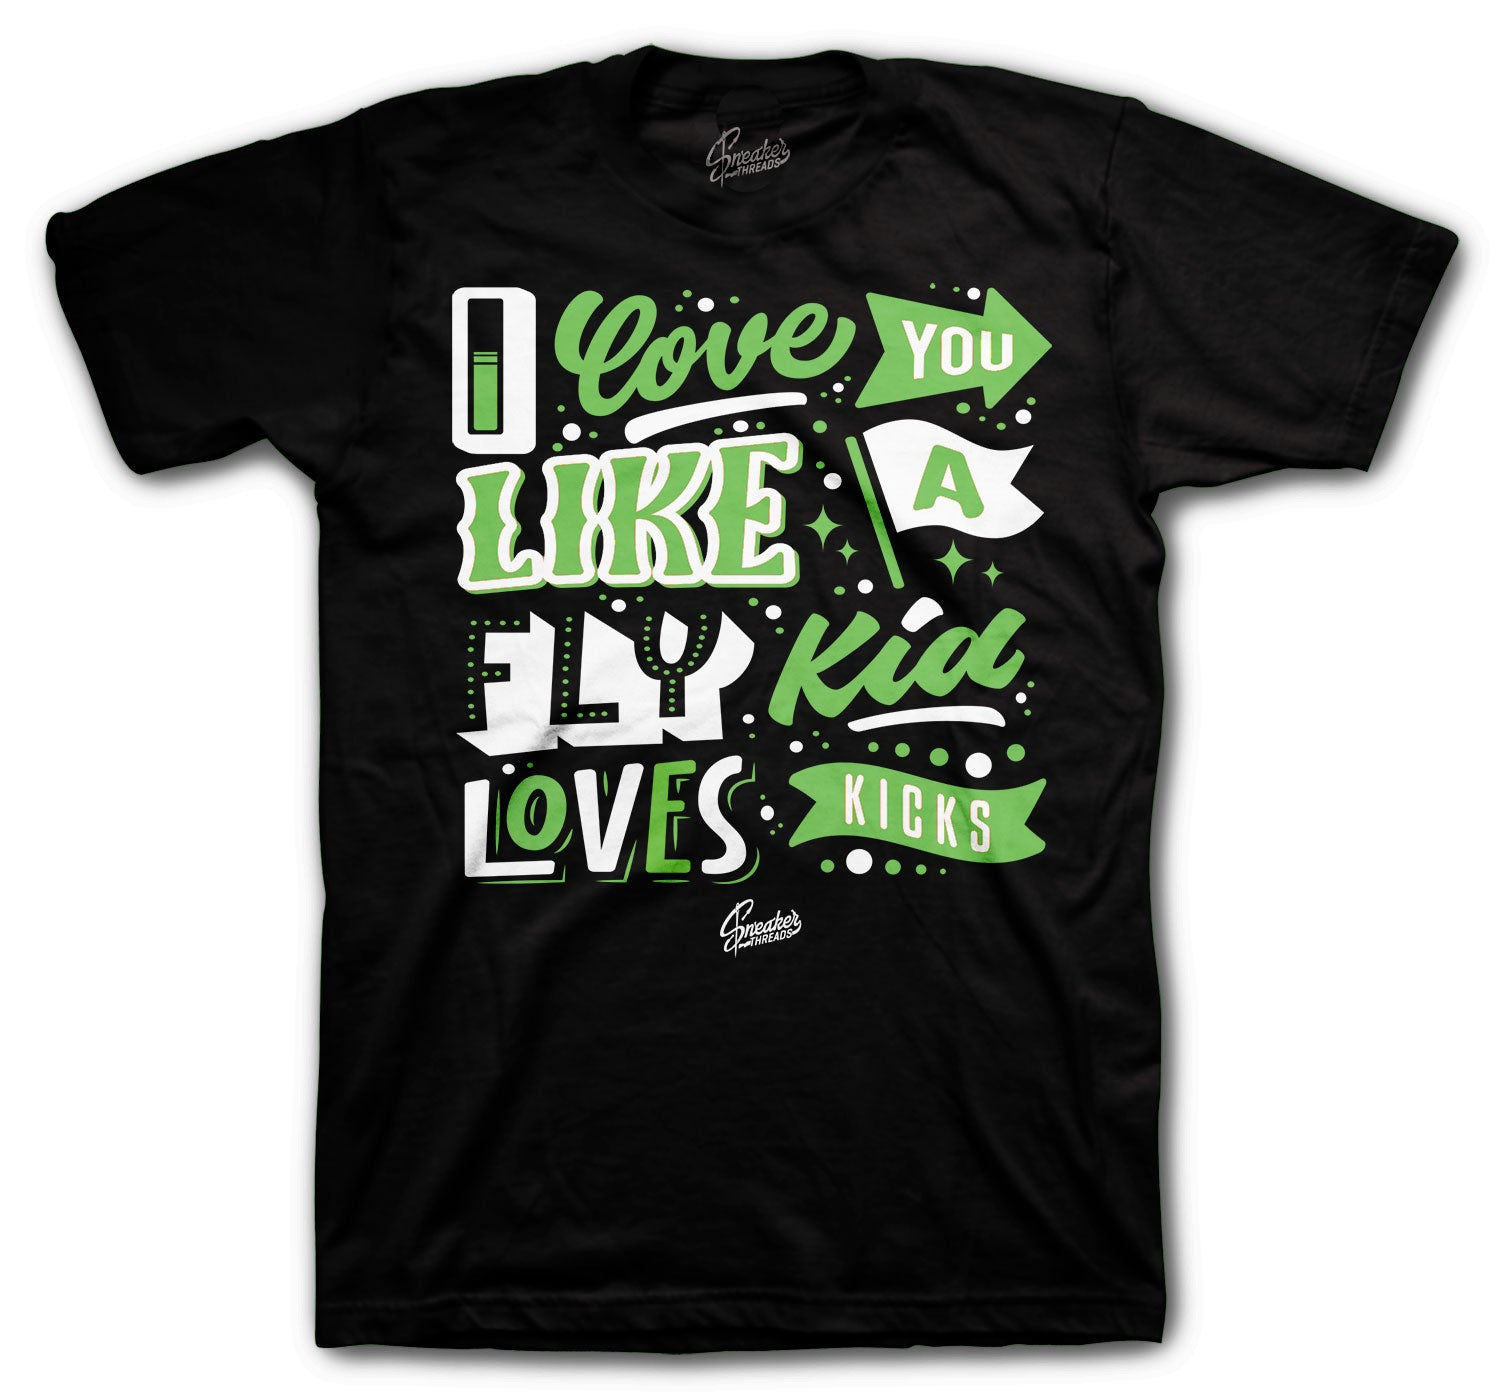 Jordan 1 Zen Green Love Kicks Shirt